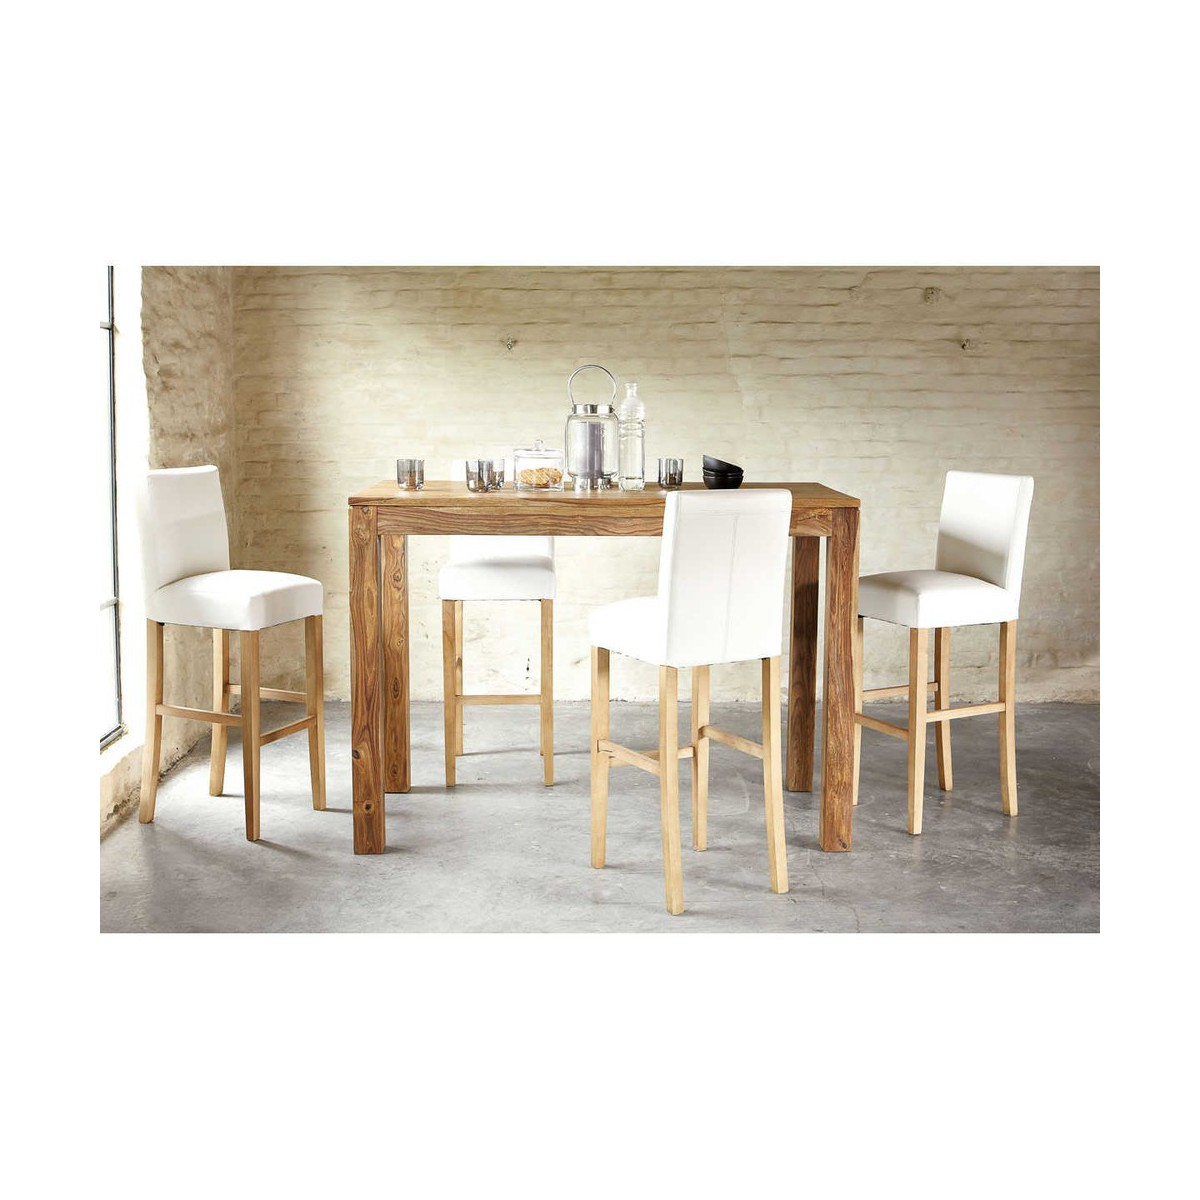 Luxe chaises salle manger design table de cuisine id es for Table salle a manger luxe